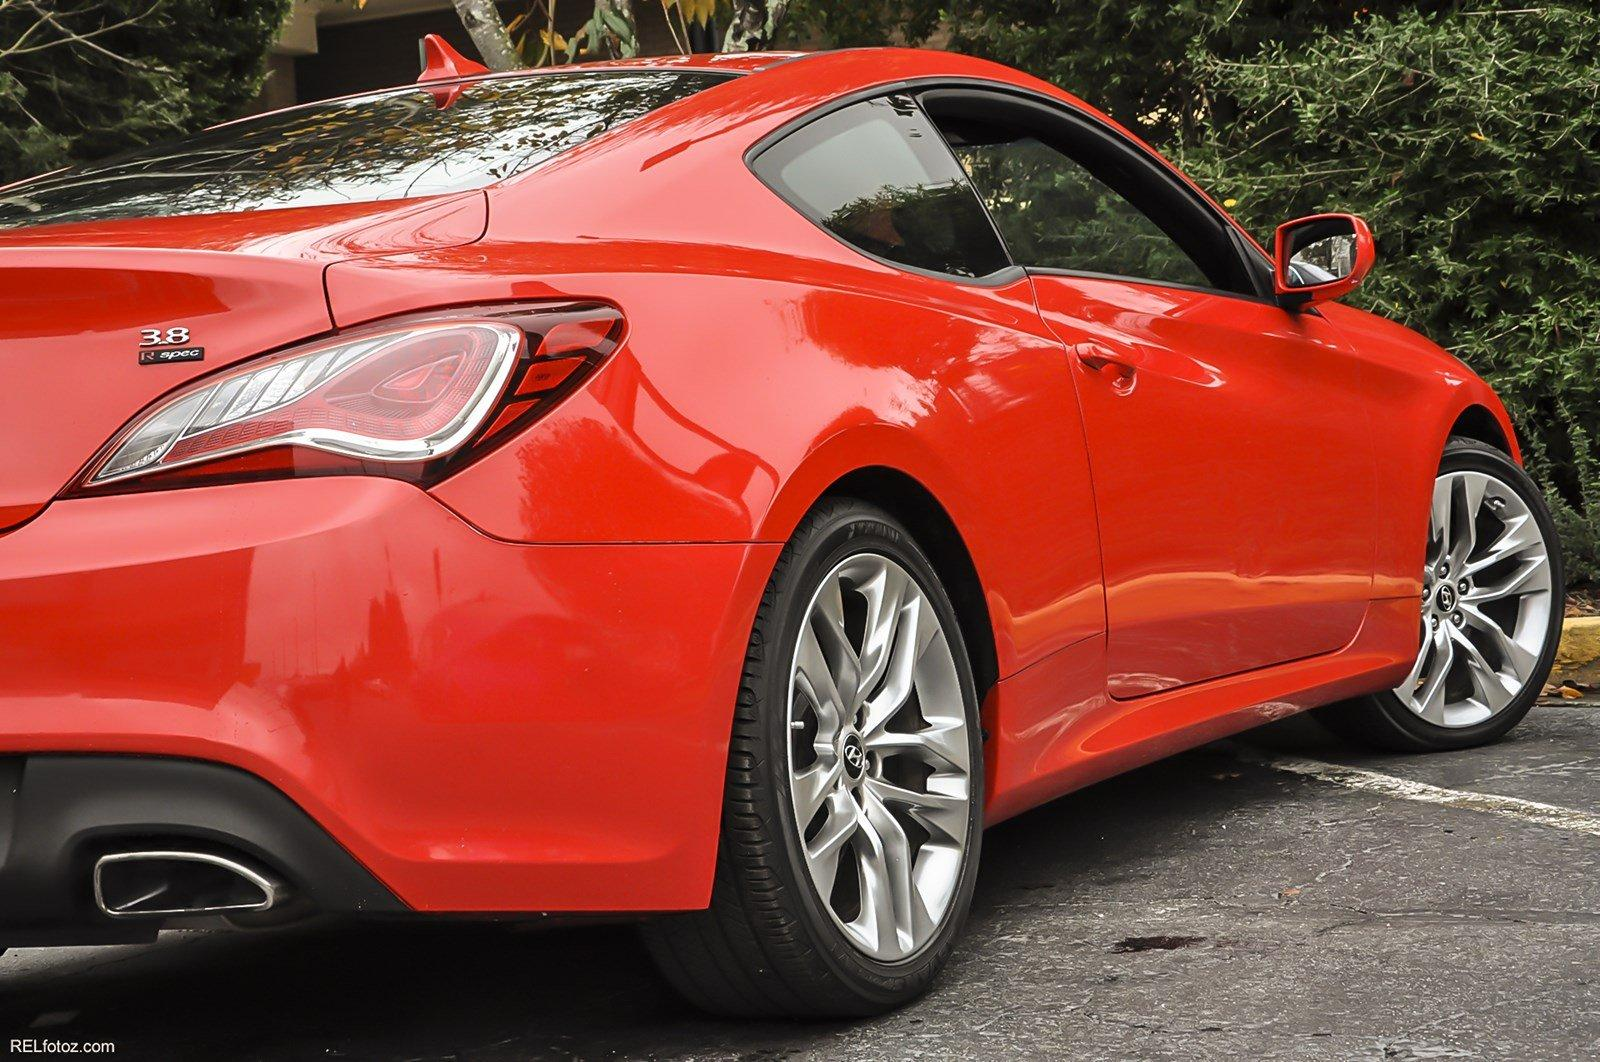 Used 2013 Hyundai Genesis Coupe Genesis Coupe 3.8 R Spec | Roswell, GA